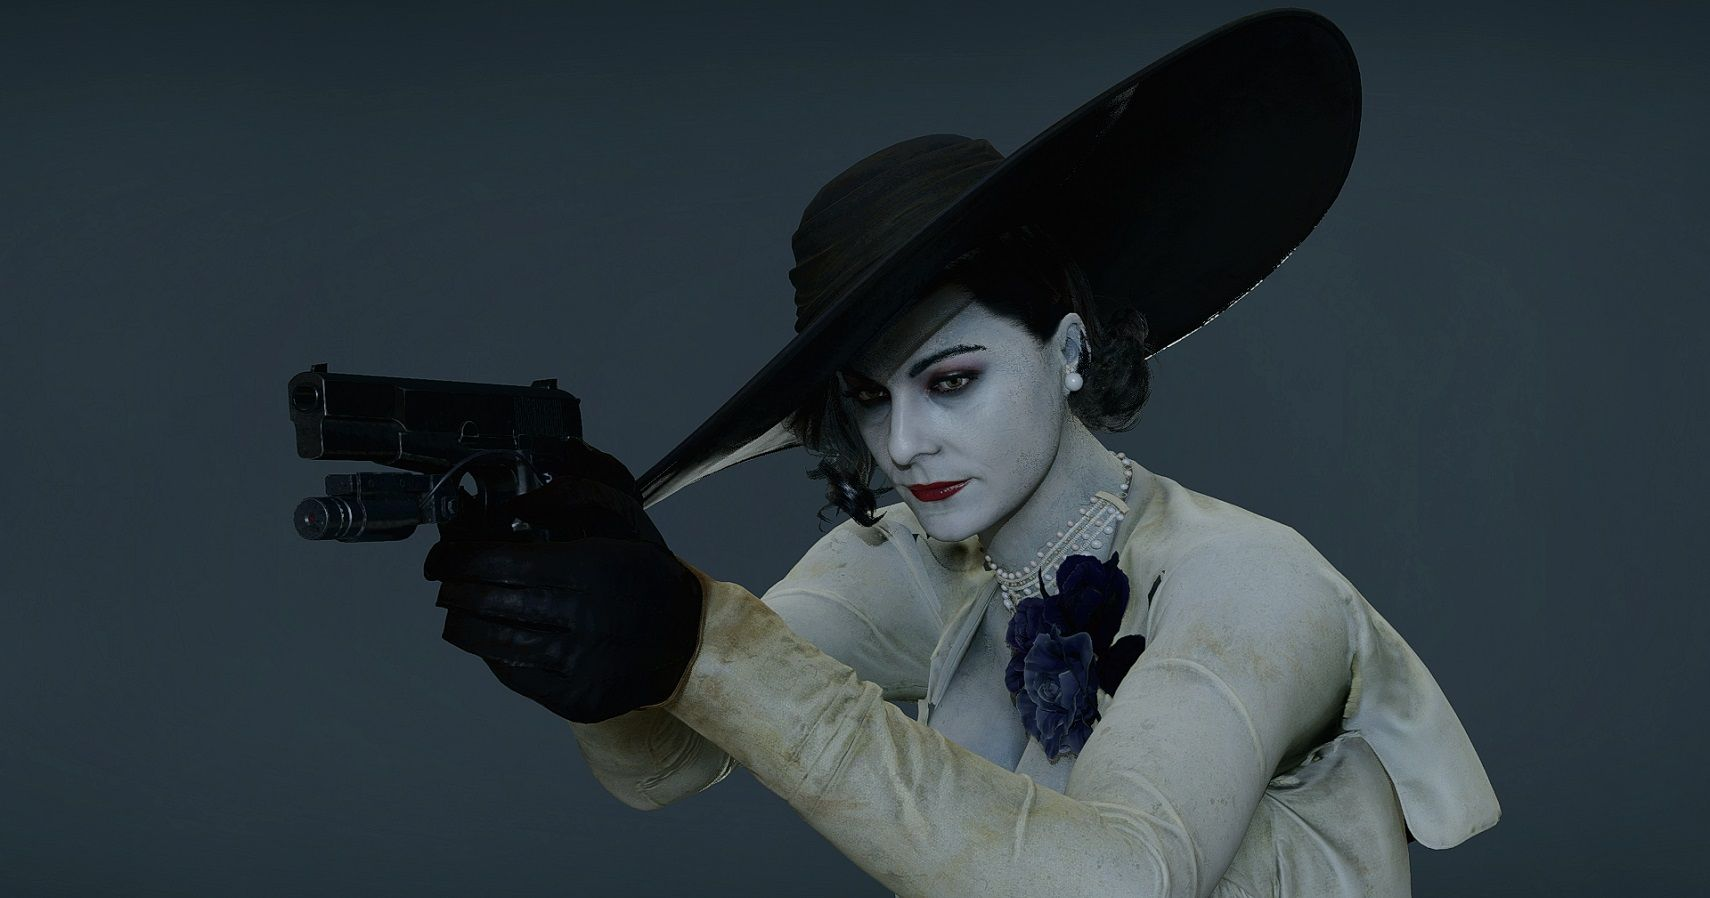 We Asked Modders Why They're So Obsessed With Resident Evil Village's Lady Dimitrescu